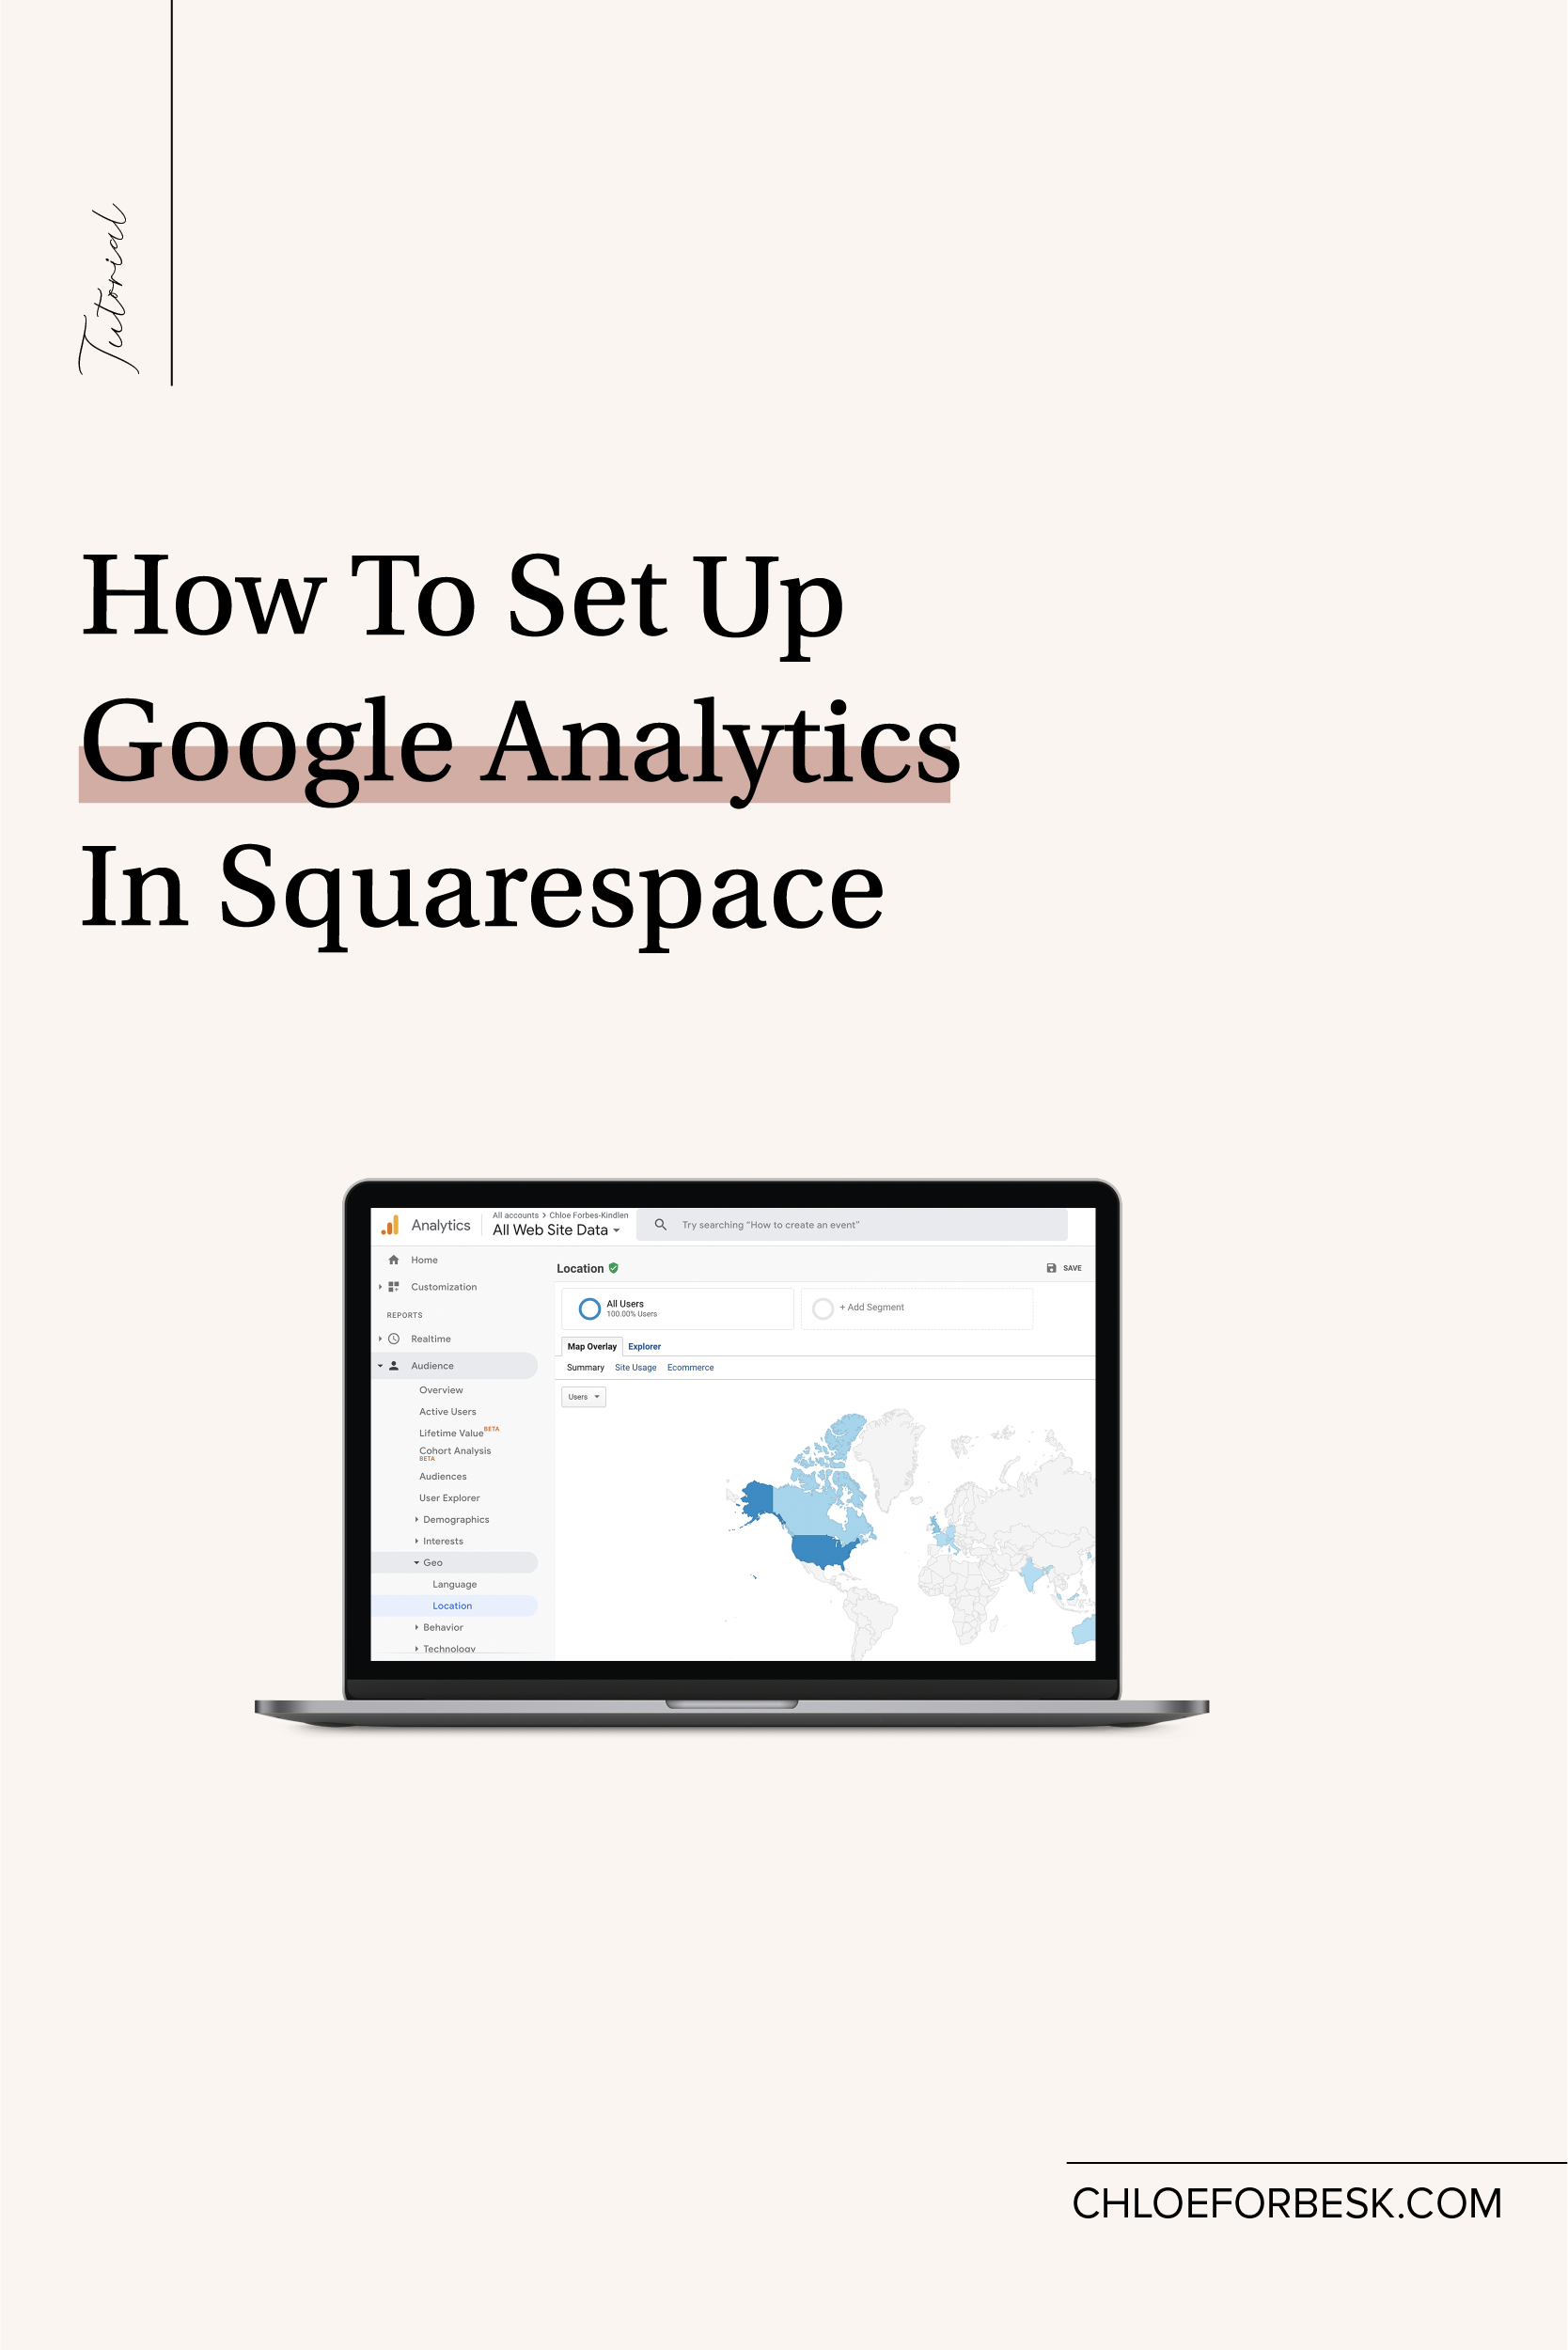 How To Set Up Google Analytics In Squarespace-02.png